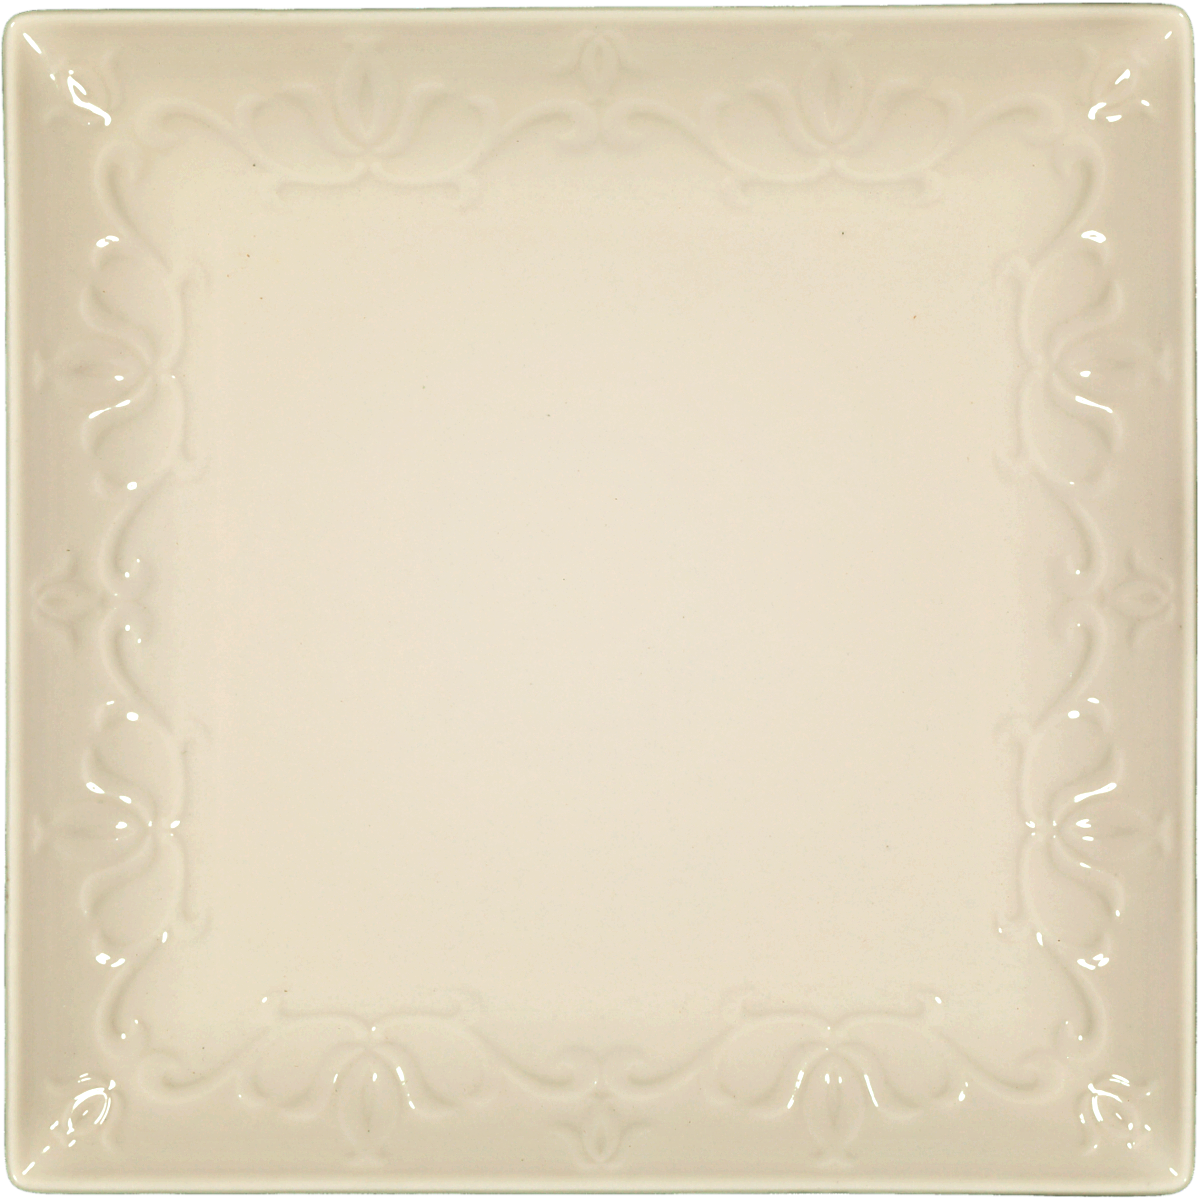 SQUARE DINNER PLATE LEAF DESIGN